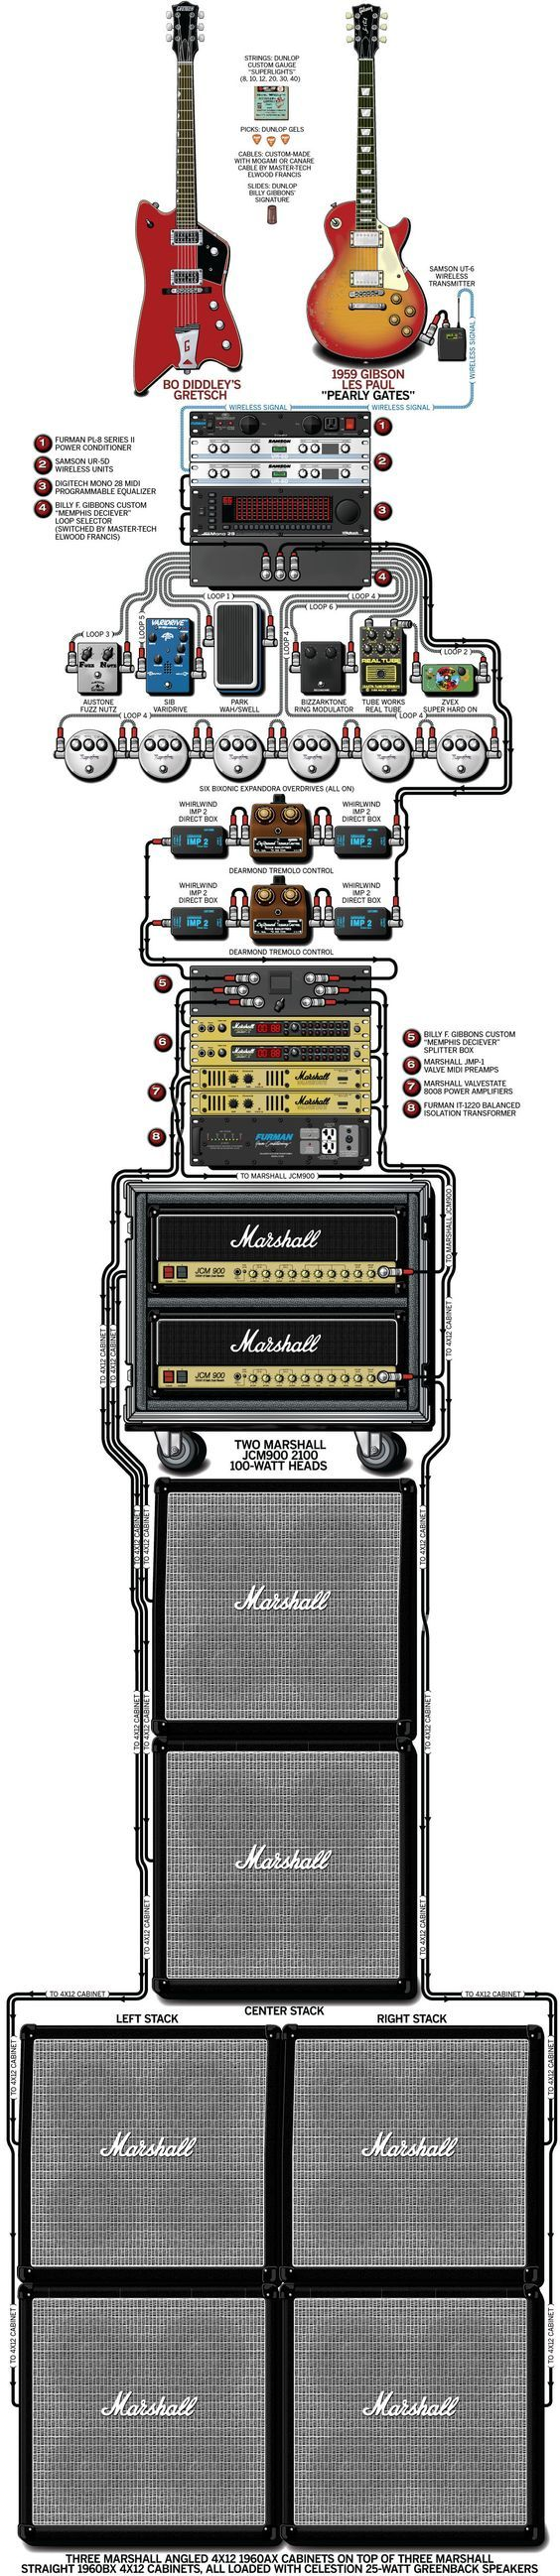 Billy Gibbons' stage rig.